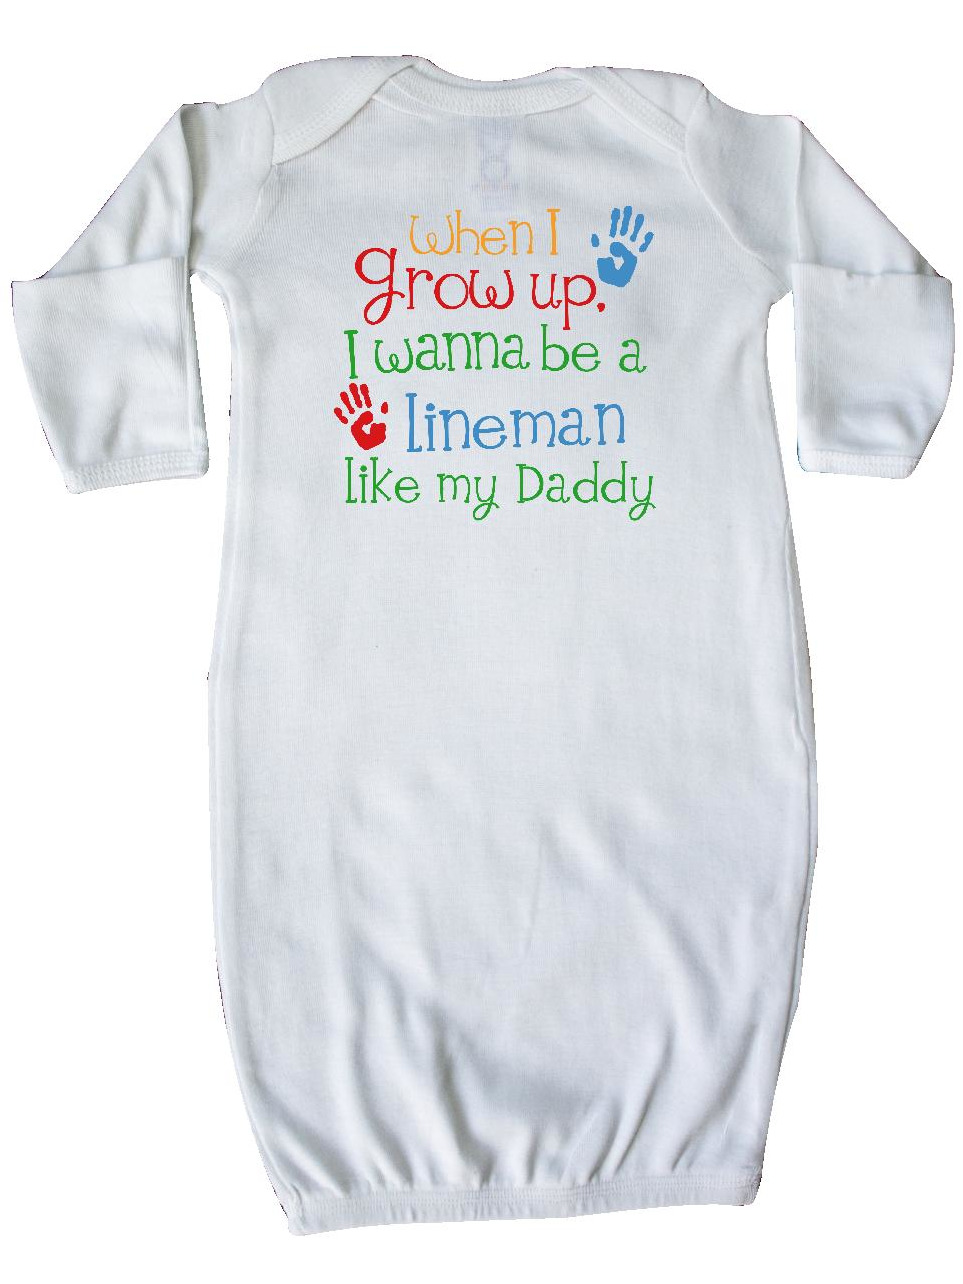 Lineman like Daddy Newborn Layette